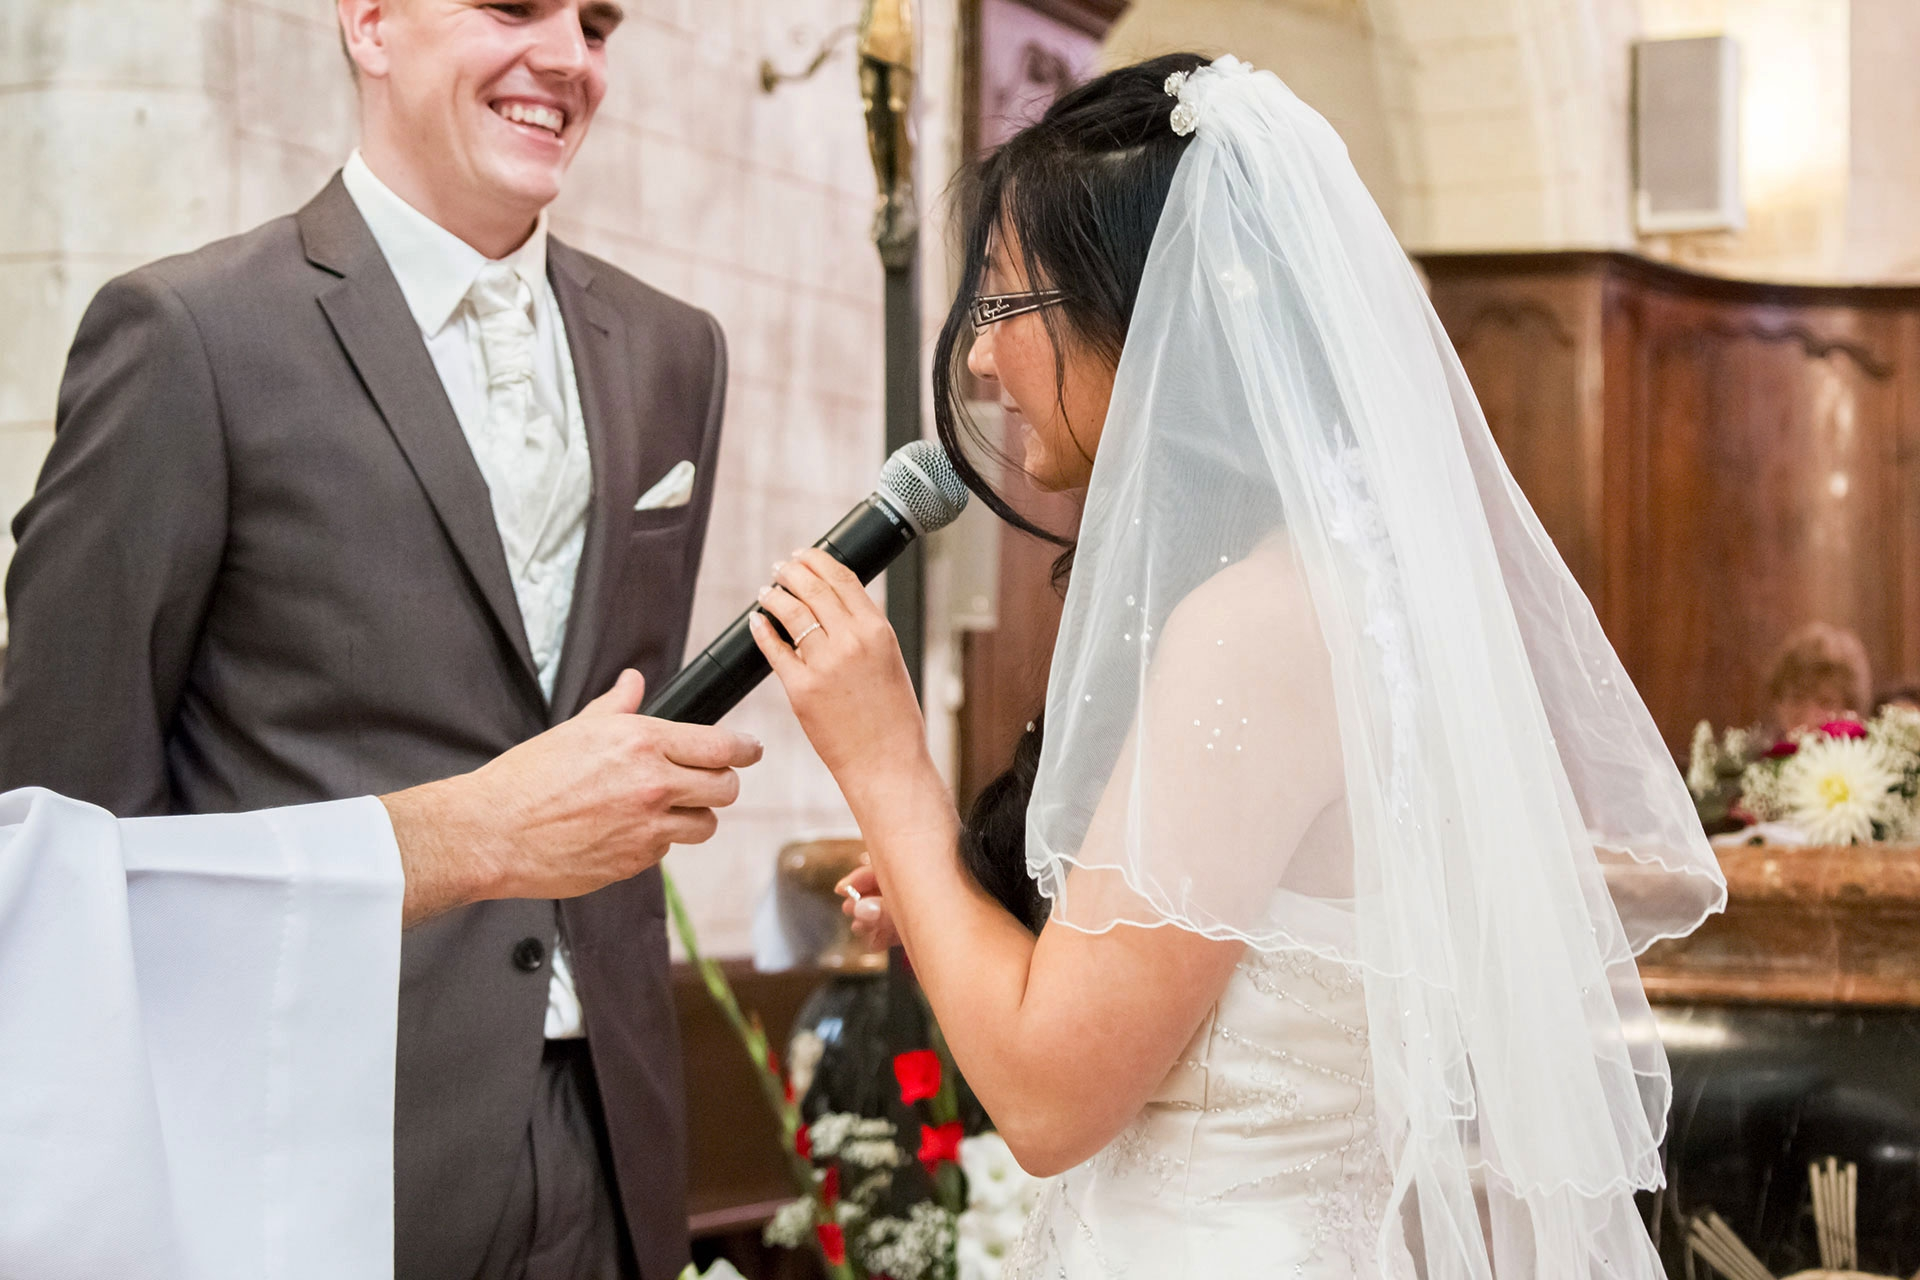 particuliers-mariages-oui-mayingcyril-29